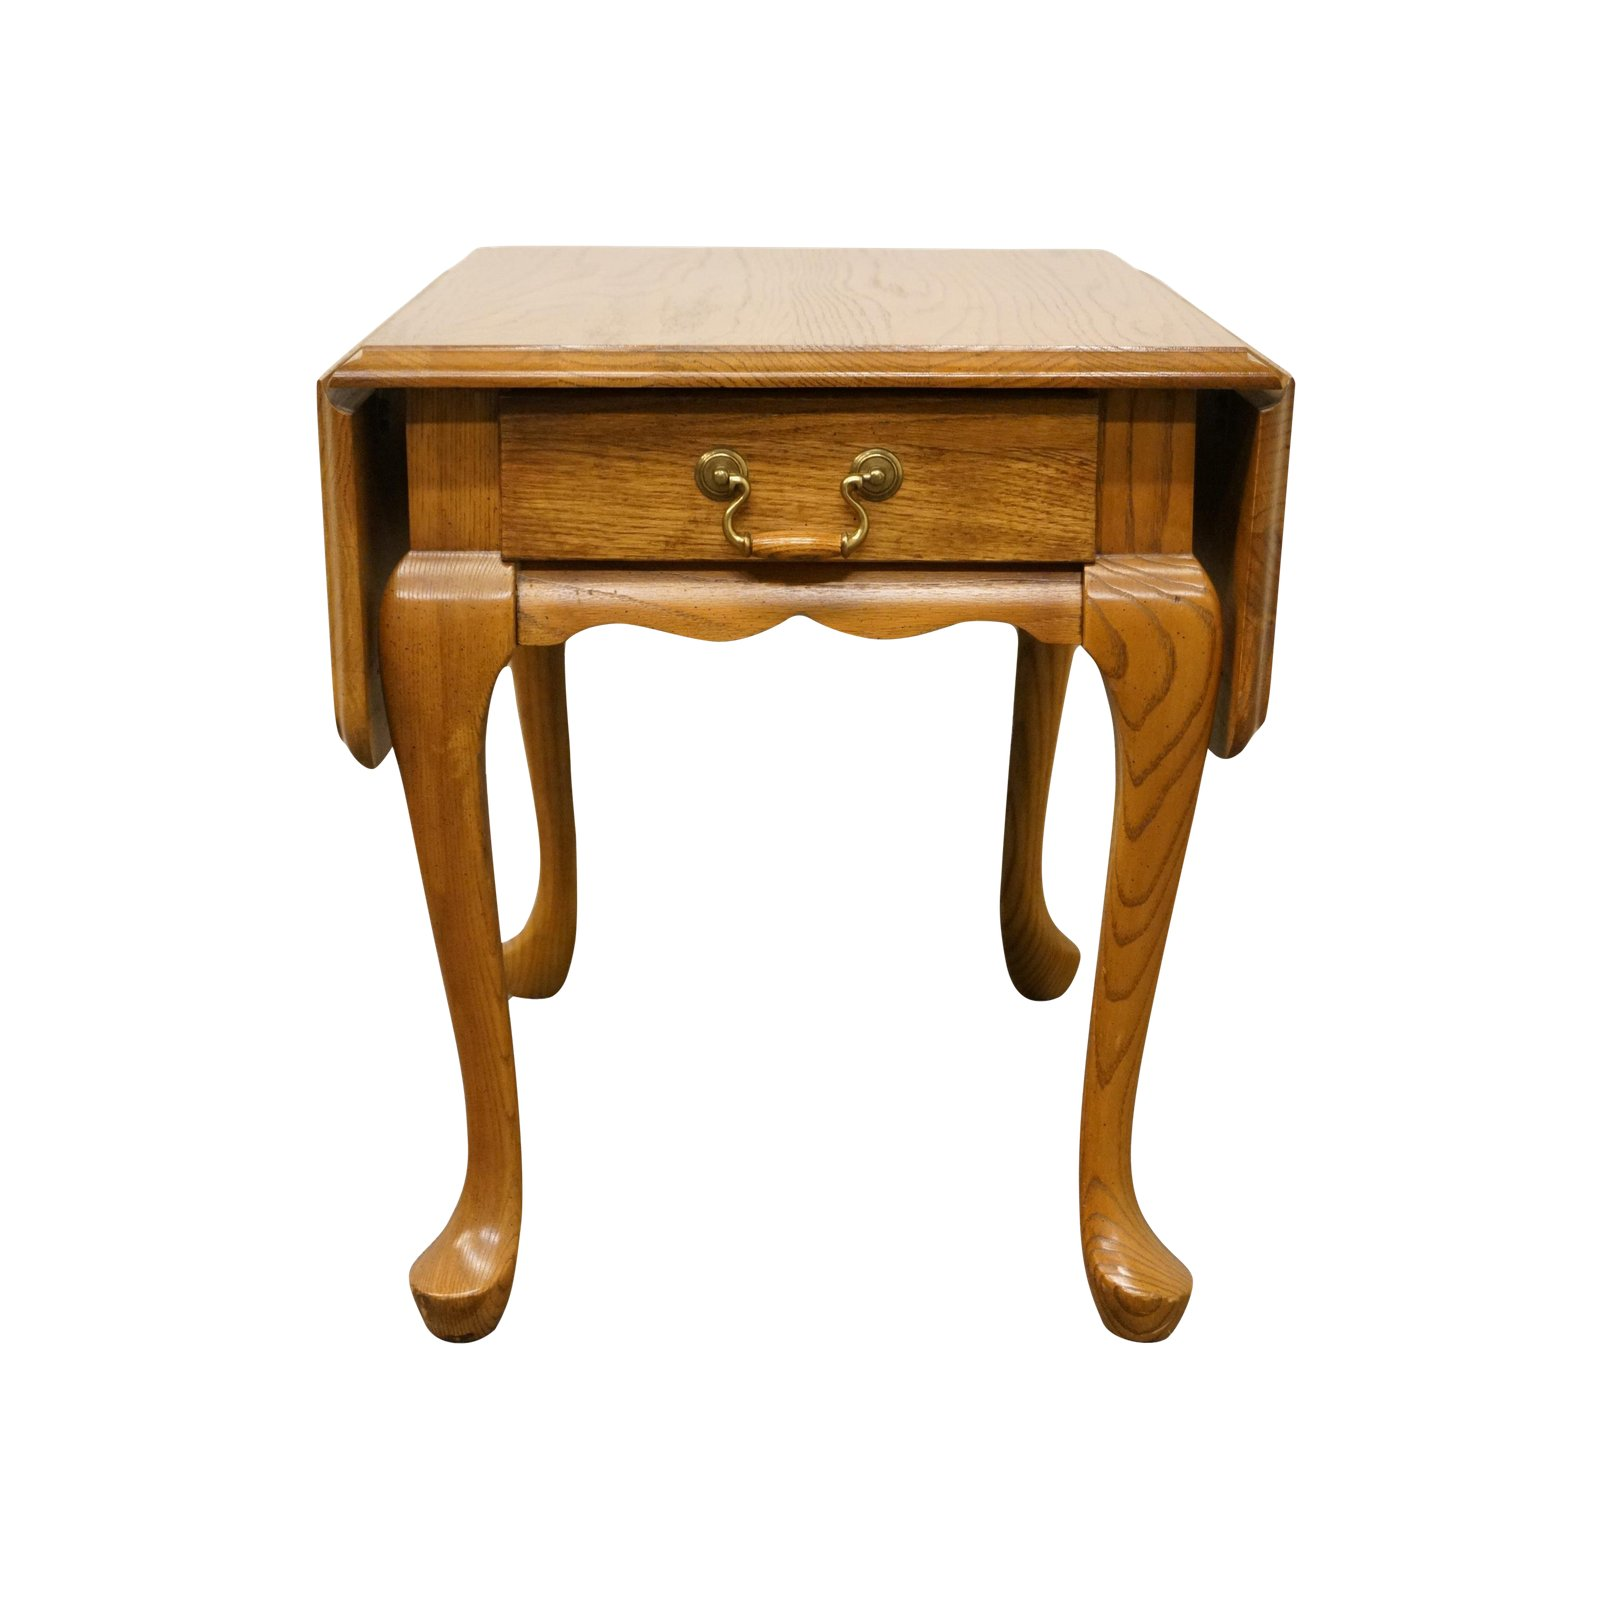 century french country mersman solid oak drop leaf accent end table unique tables chairish whole tablecloths for weddings folding antique mirror pier one bedroom sets coffee chair